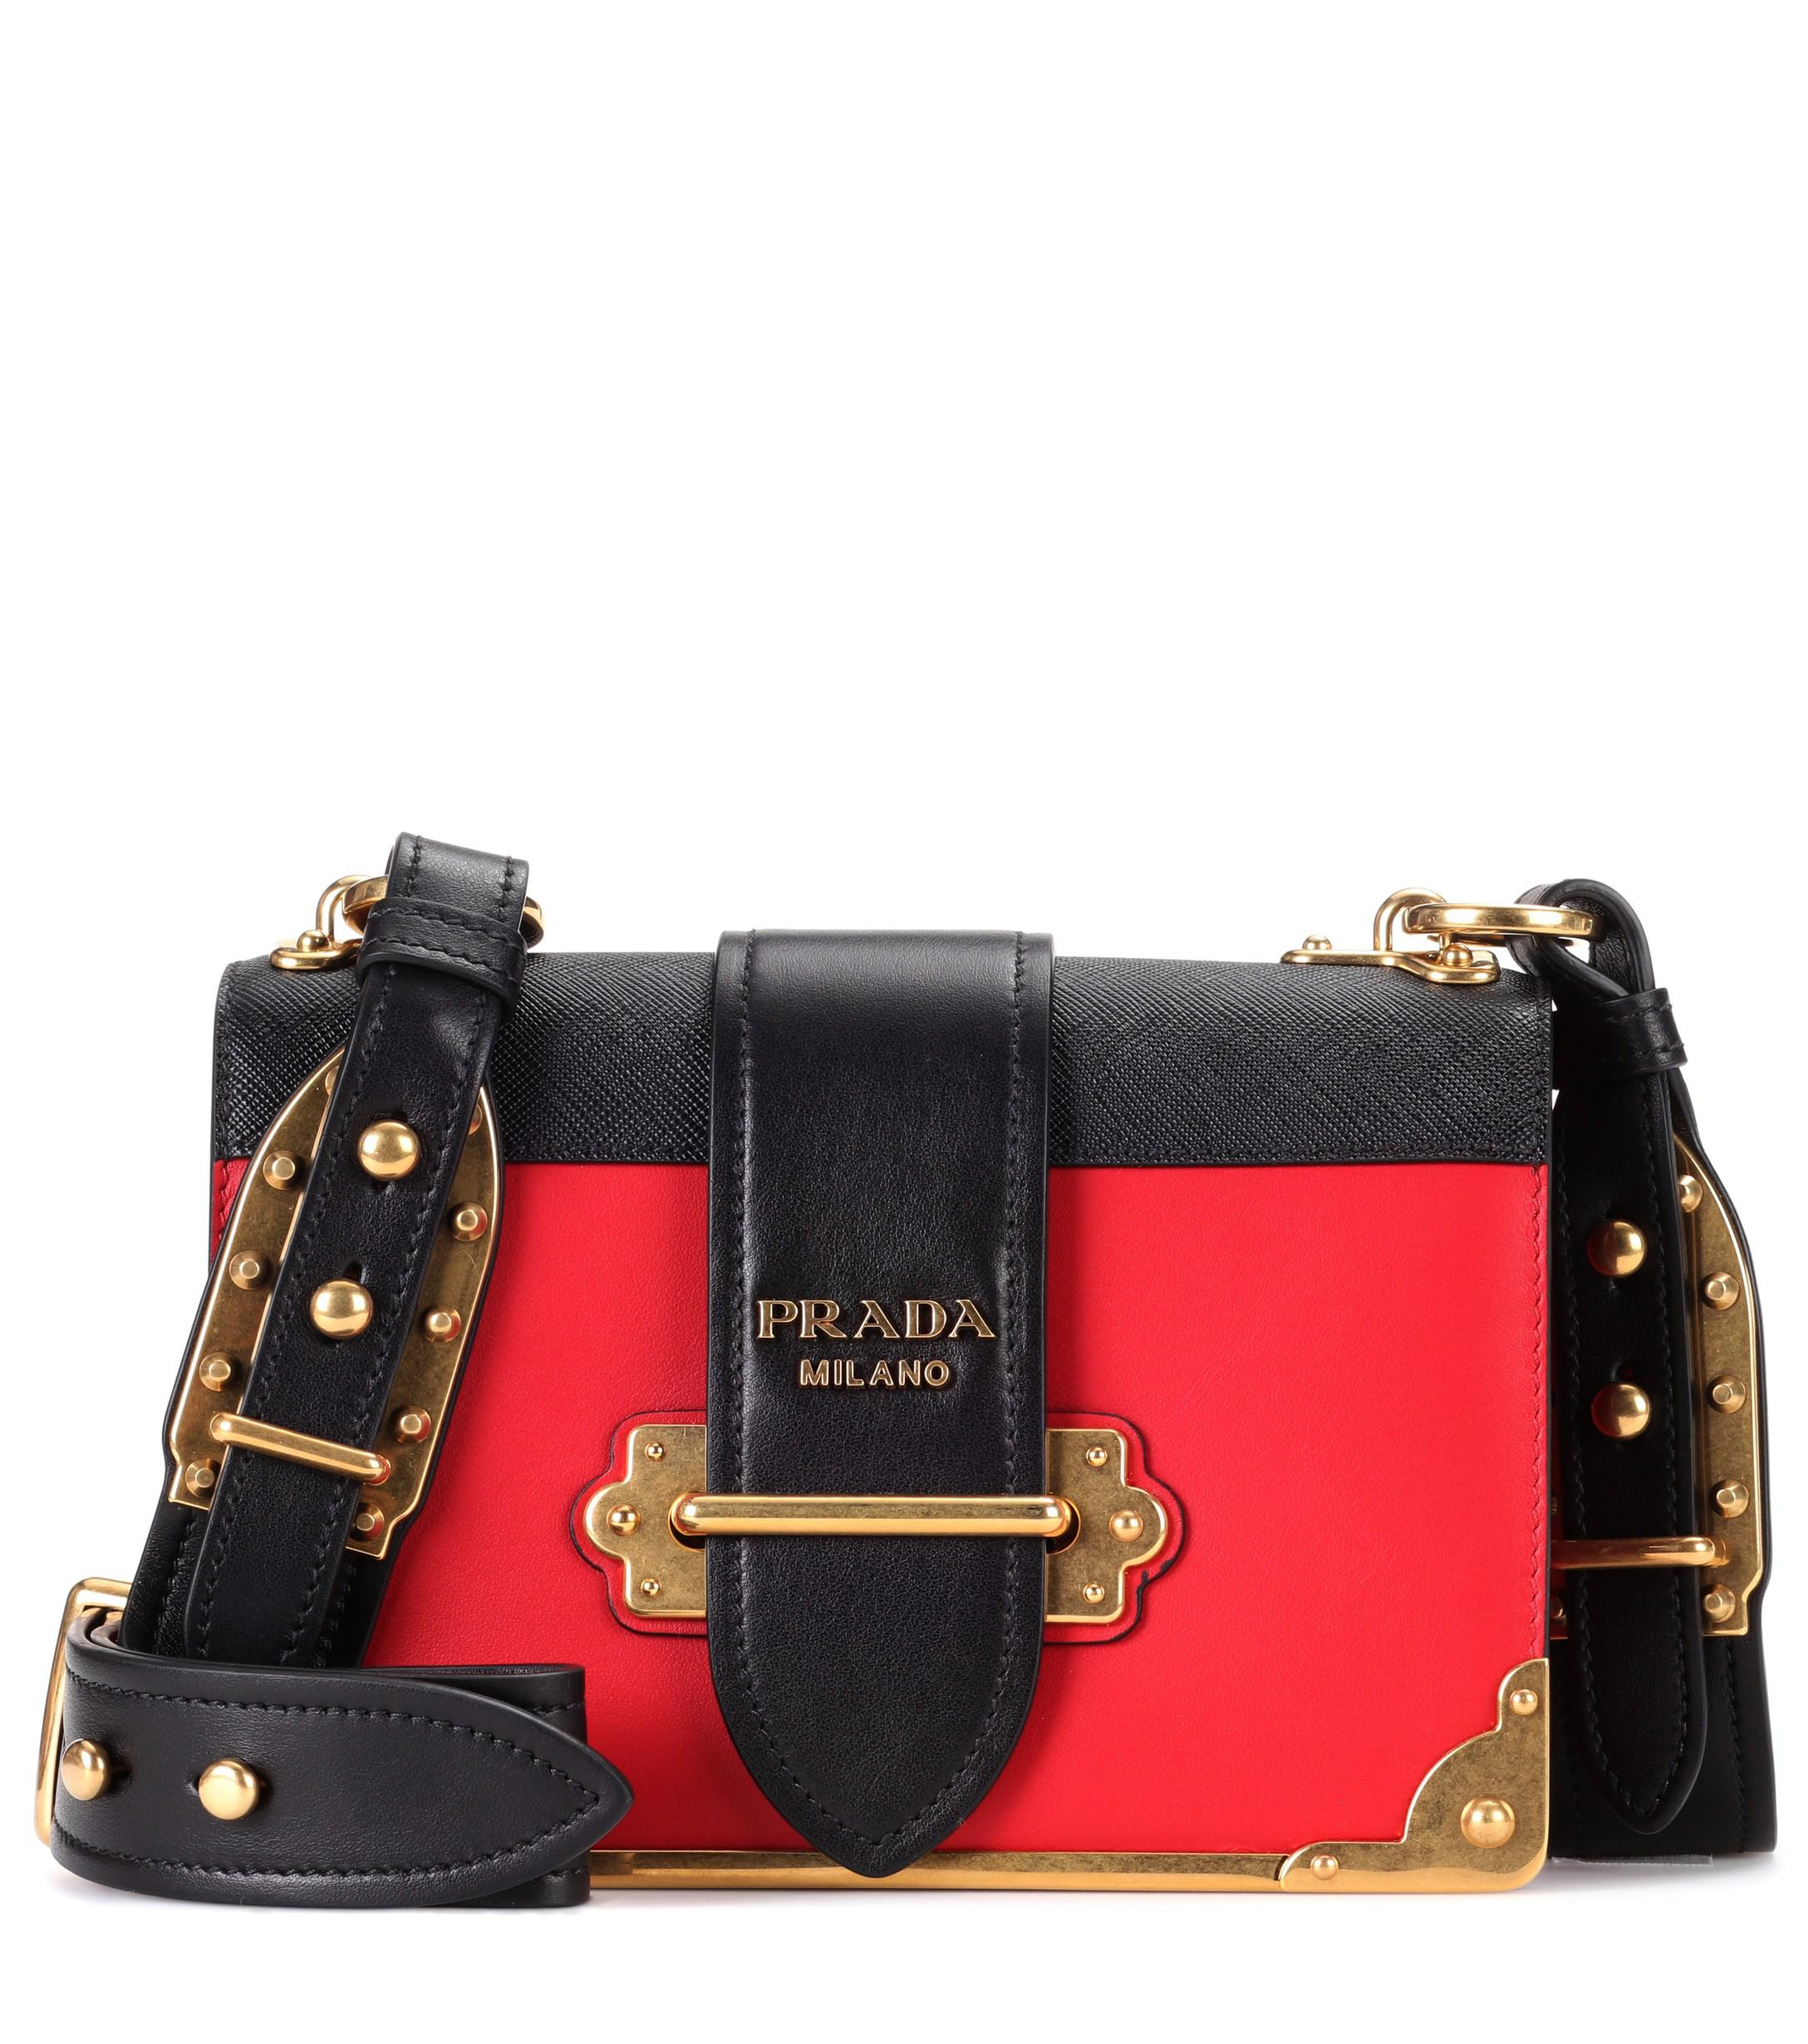 3de287e08fa0 Lyst - Prada Cahier Leather Shoulder Bag in Red - Save 5%